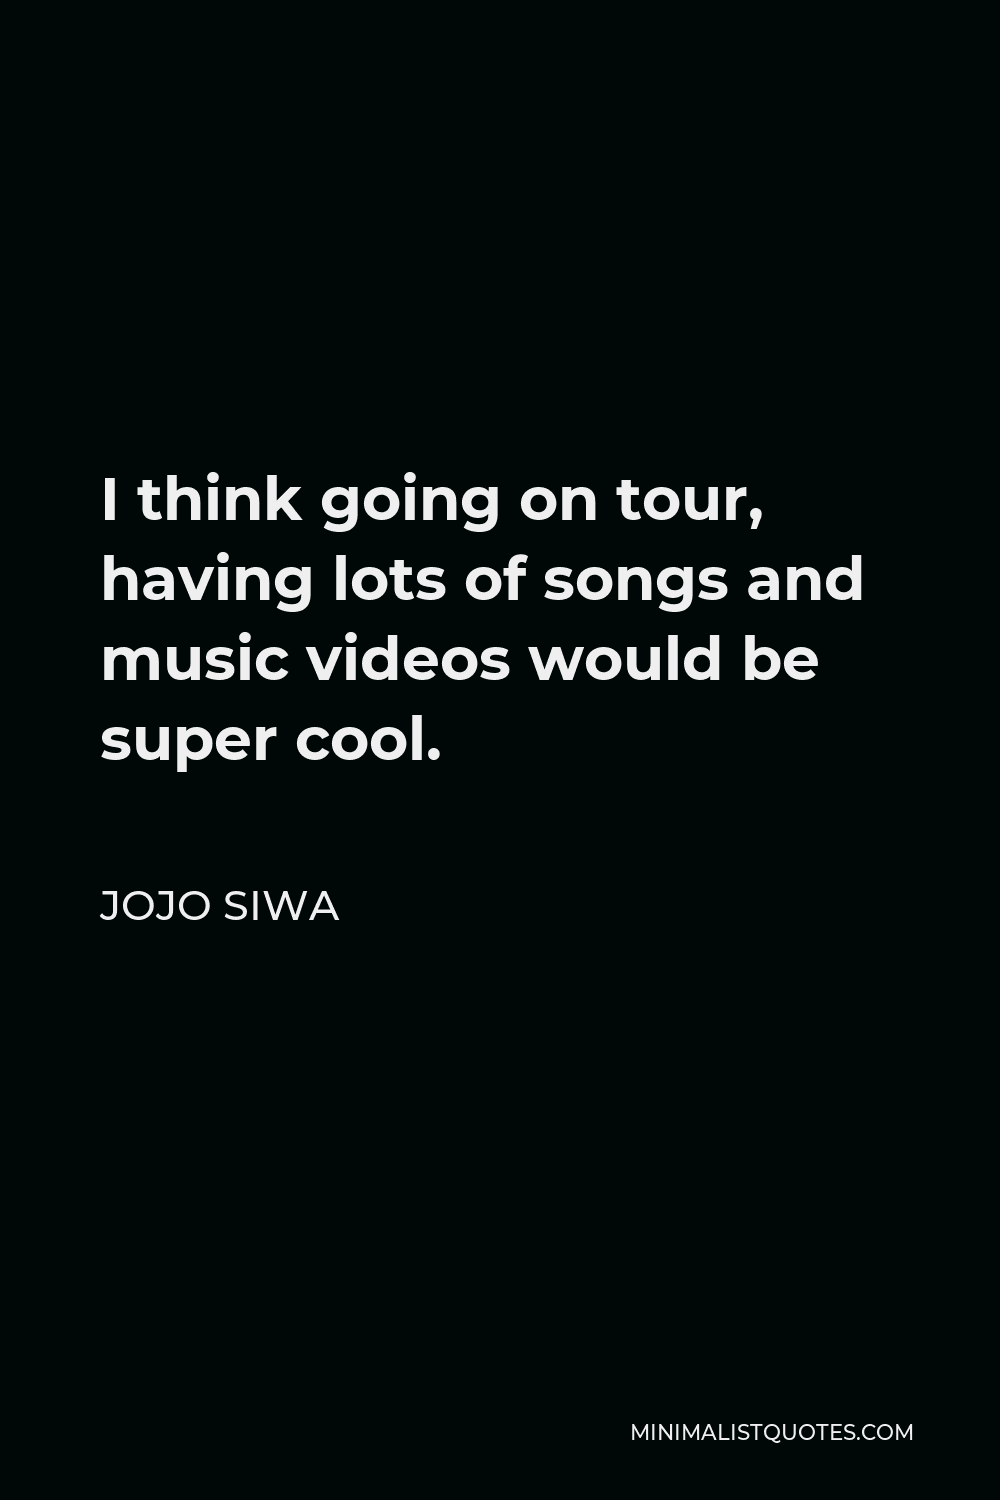 JoJo Siwa Quote - I think going on tour, having lots of songs and music videos would be super cool.